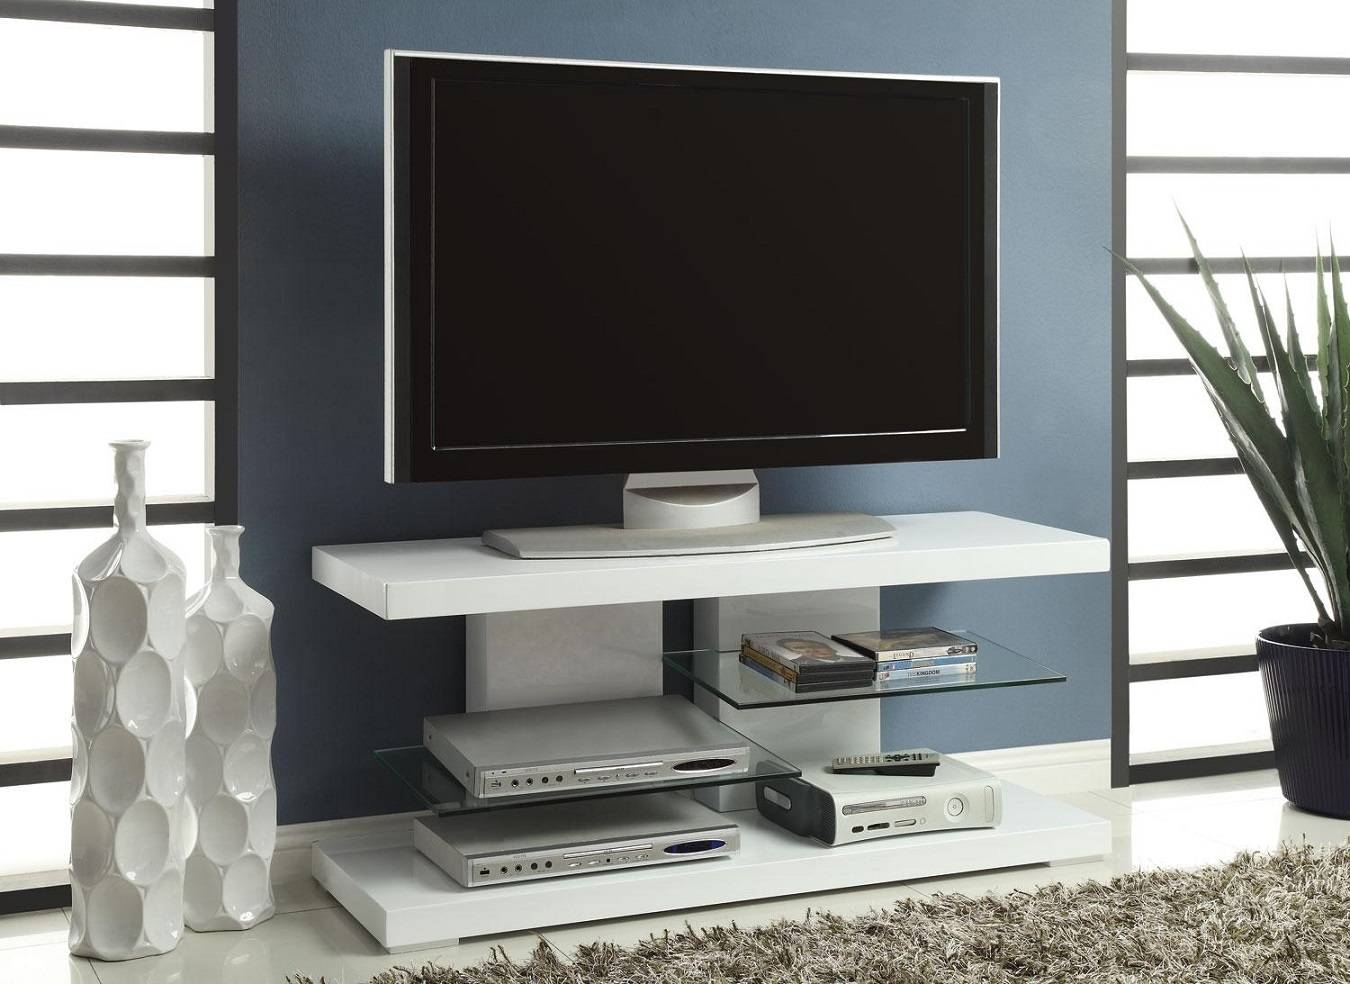 White Painted Plywood Flat Screen Tv Stand With Tempered Glass with regard to Stylish Tv Stands (Image 15 of 15)